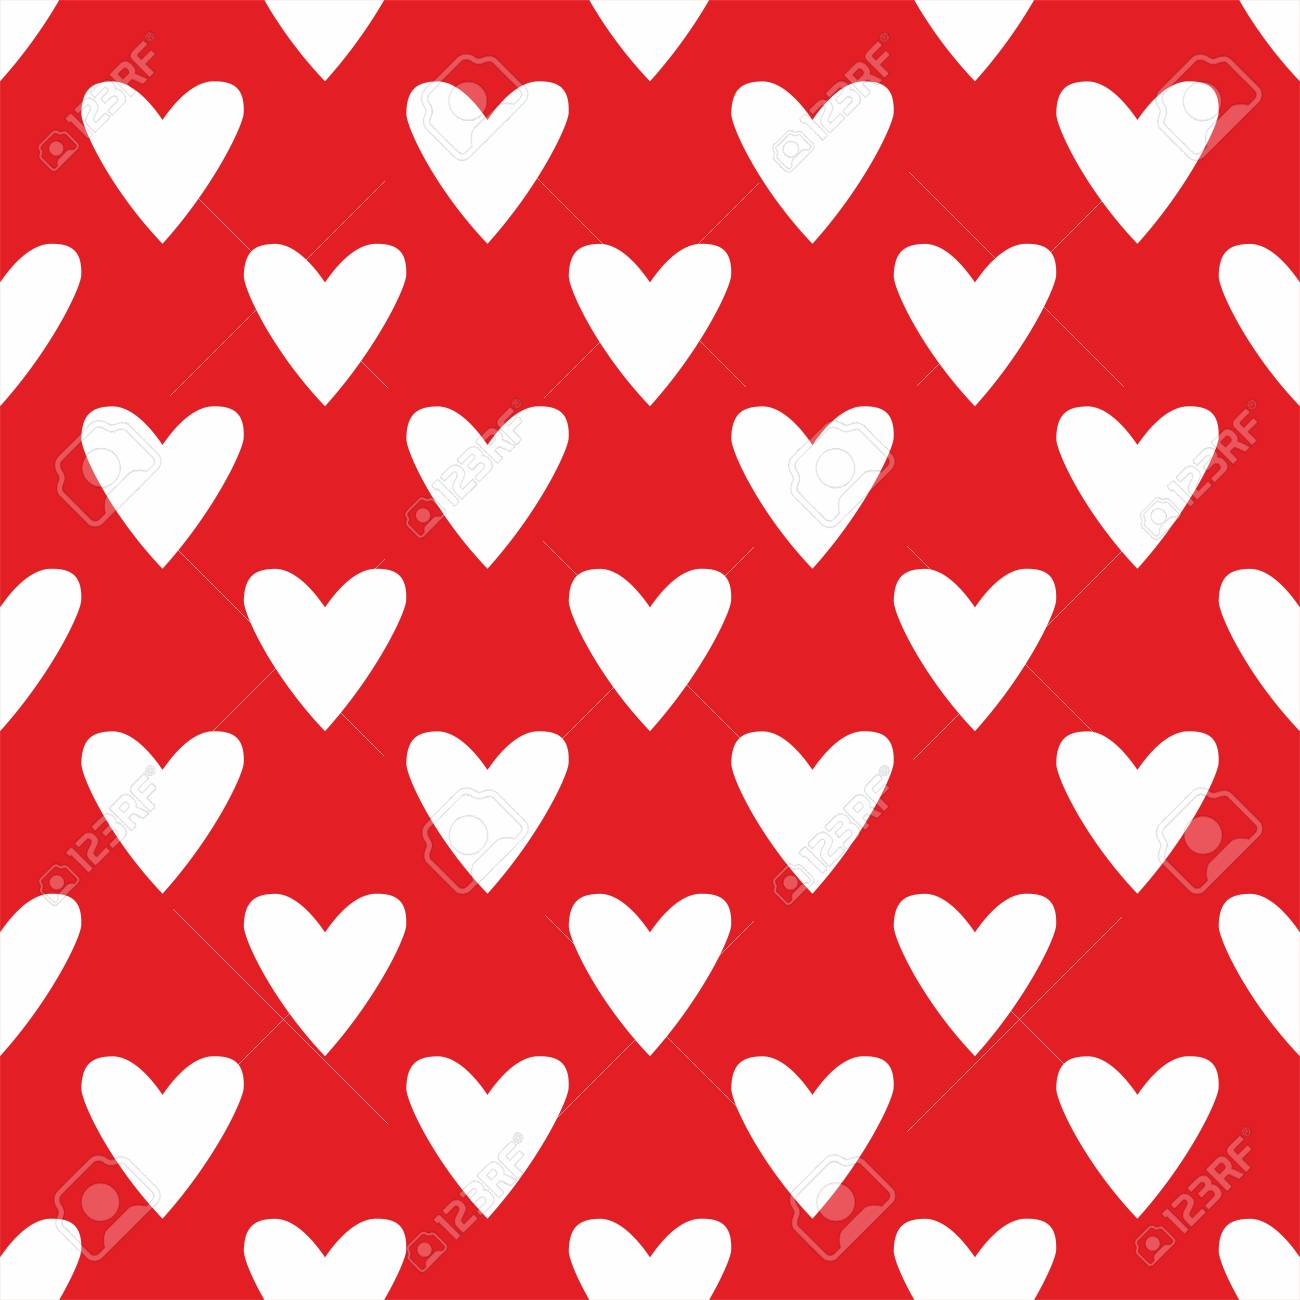 Tile Valentine Vector Pattern With White Hearts On Red Background